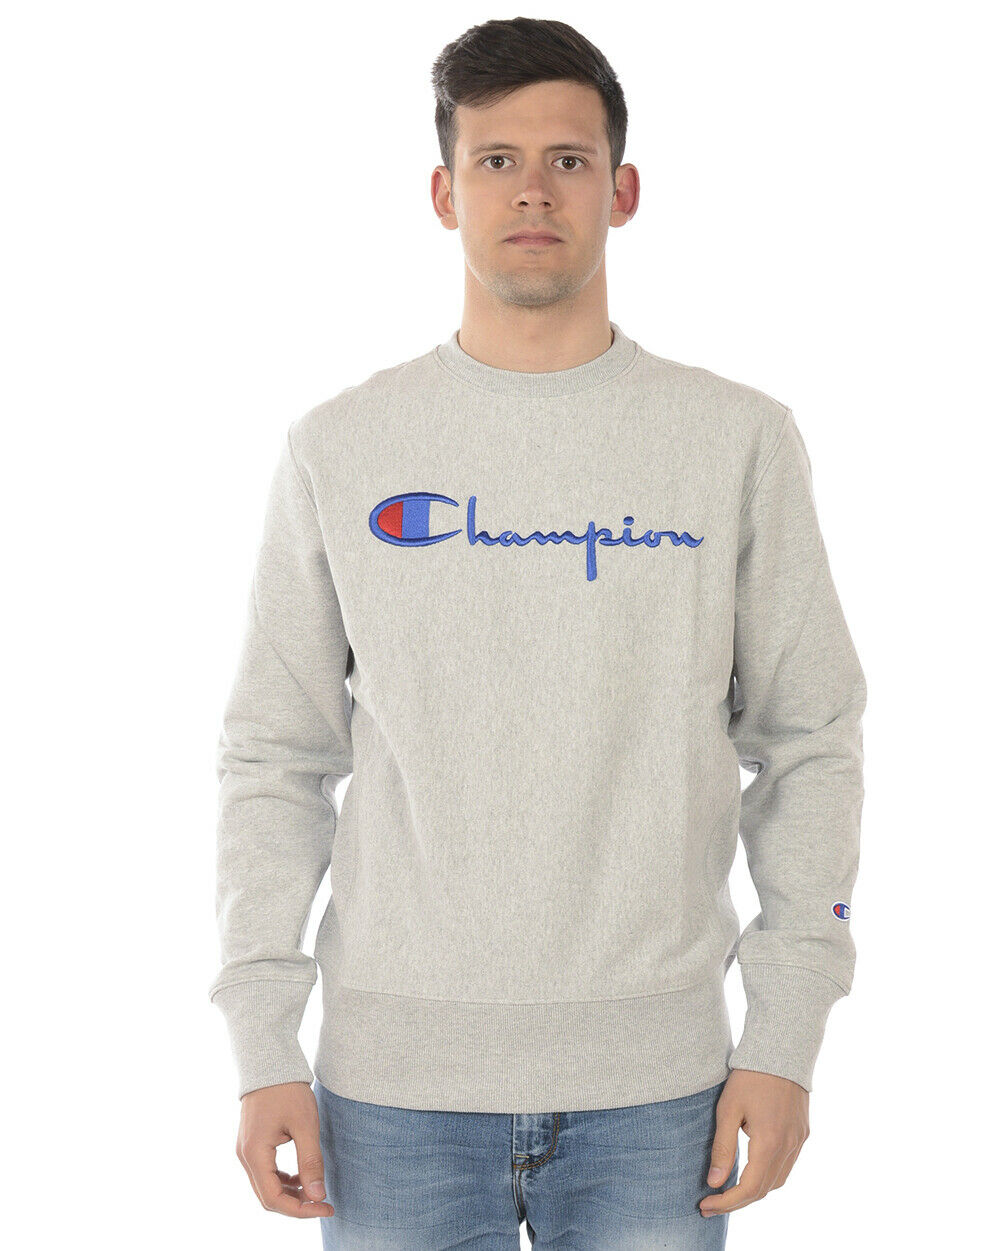 Champion schweißhemd Hoodie baumwolle Man grau 210975 EM004 Sz. XL PUT OFFER